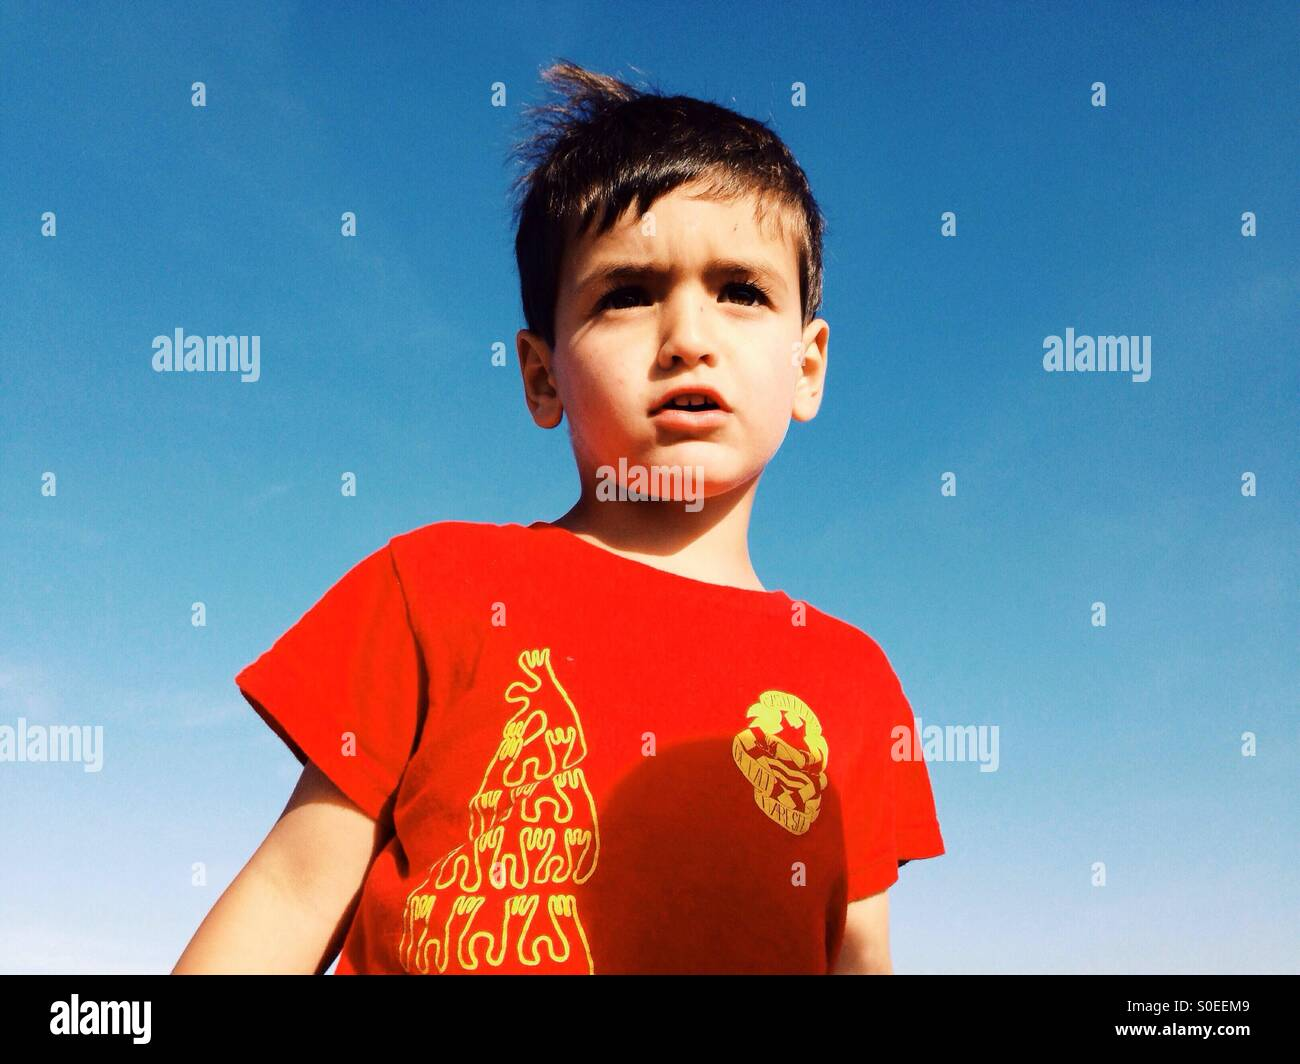 Three years old boy in a red t-shirt - Stock Image